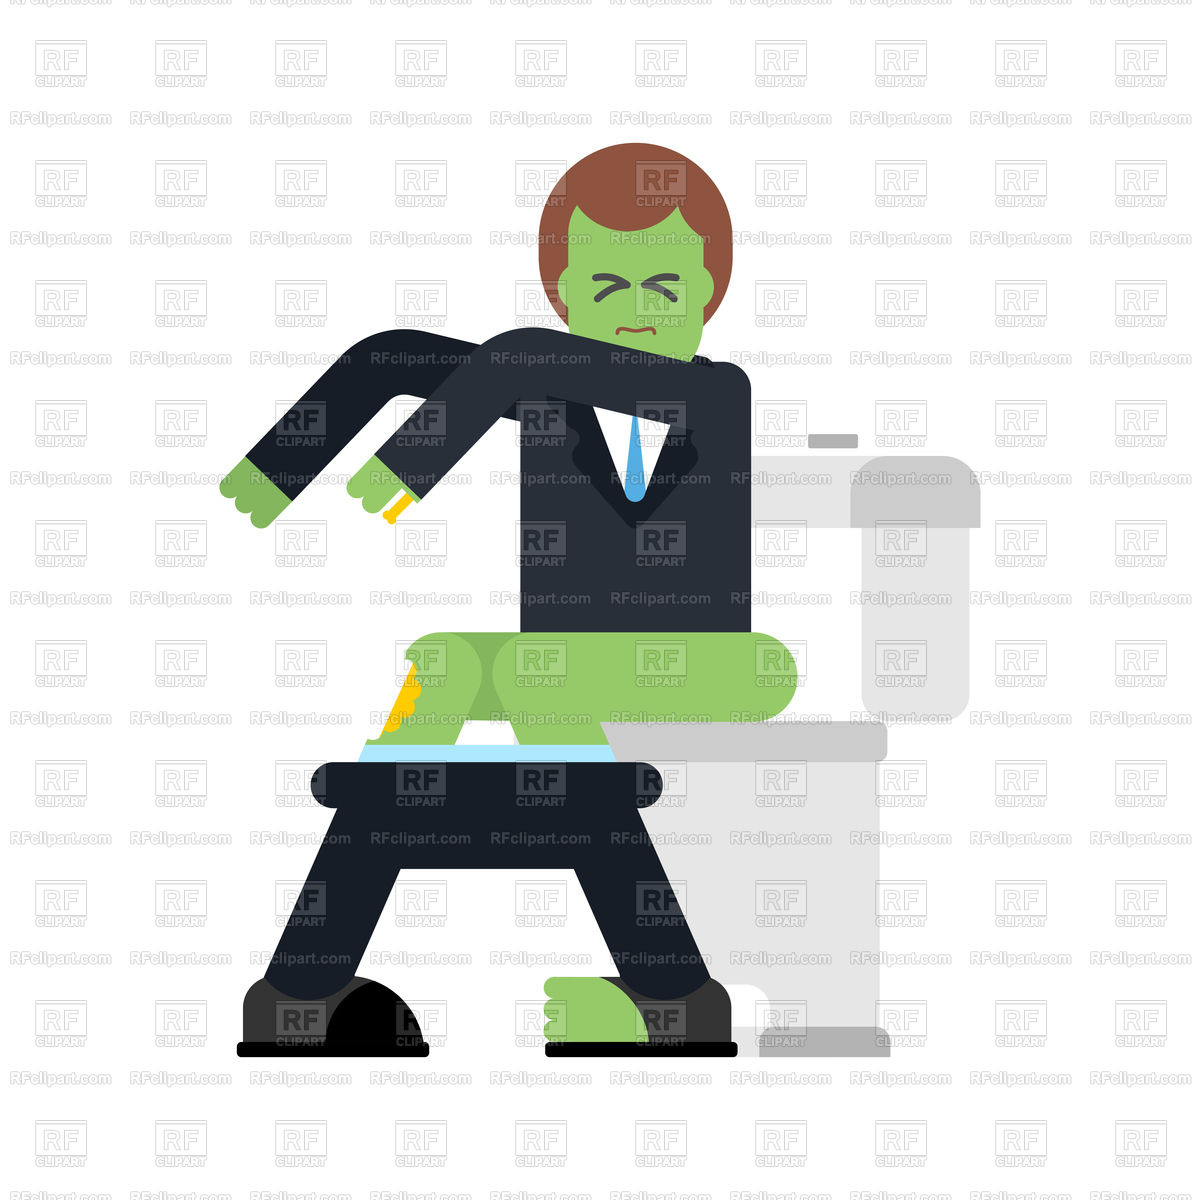 Zombie sits on toilet bowl. Dead man in WC. Stock Vector Image.